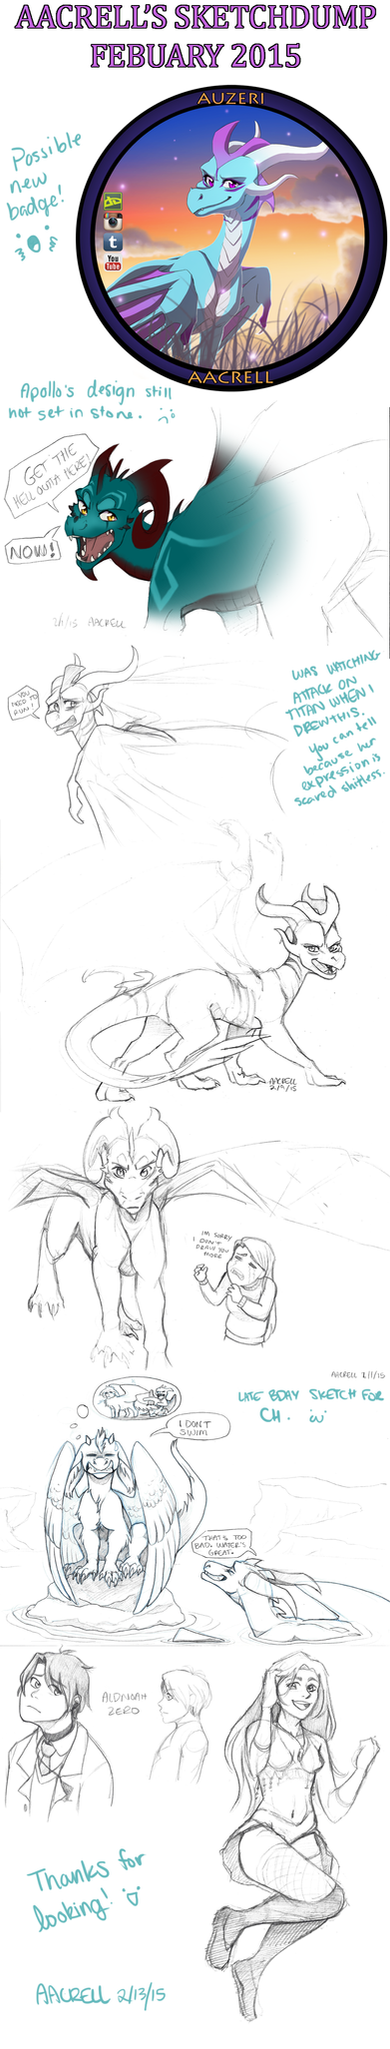 Sketchu Dump by aacrell